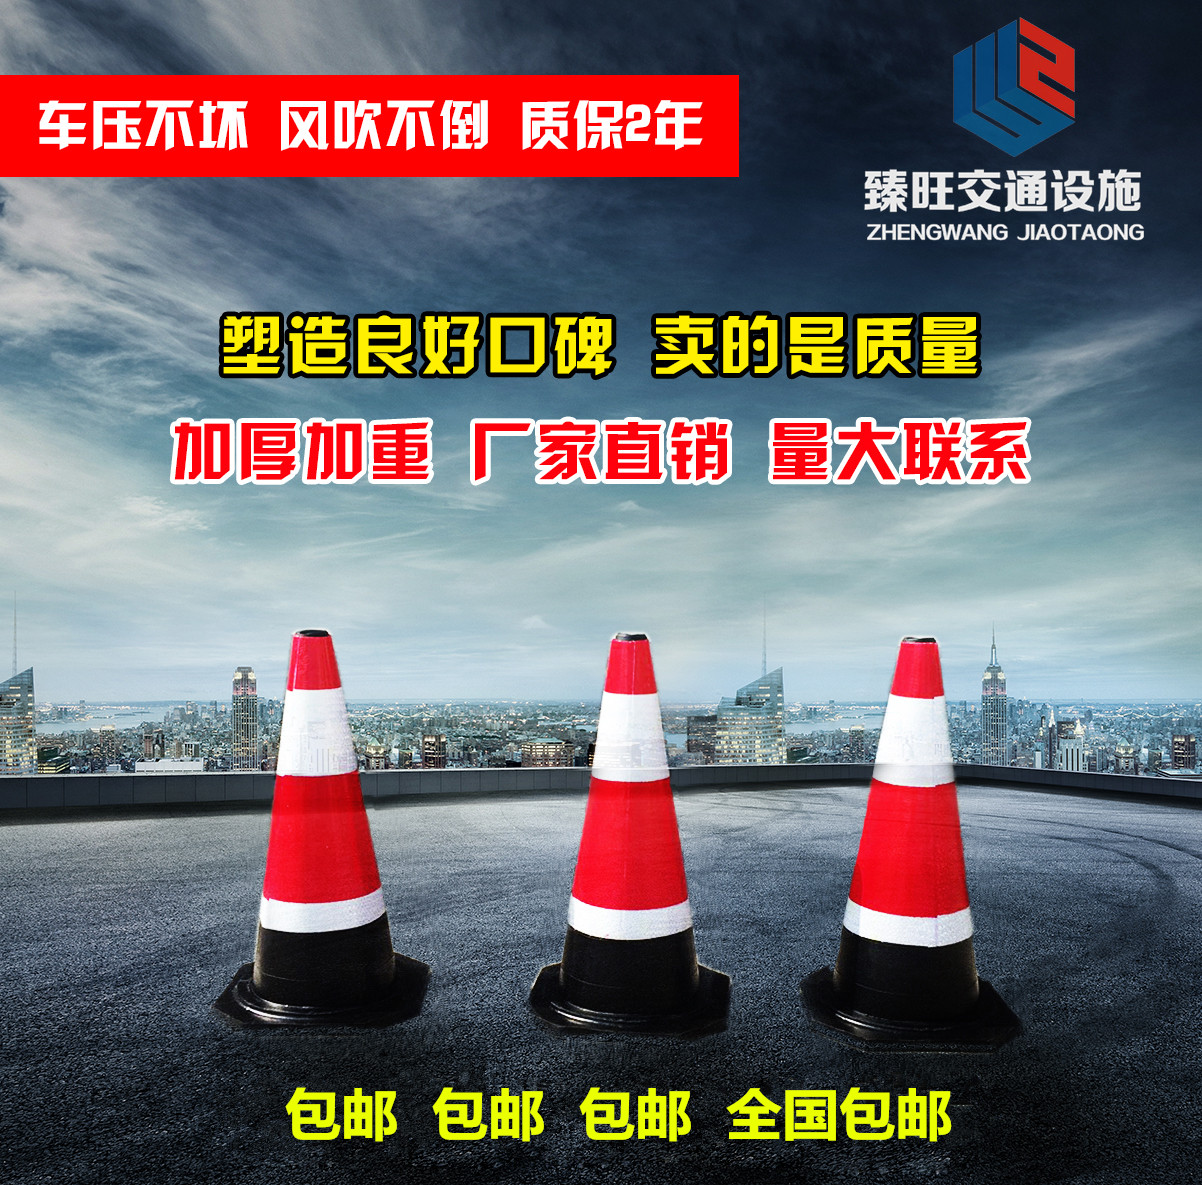 Package 70cm rubber road cones, ice cream cones, barricades, cone barrels, conical drums, warning posts, pile cones, traffic facilities